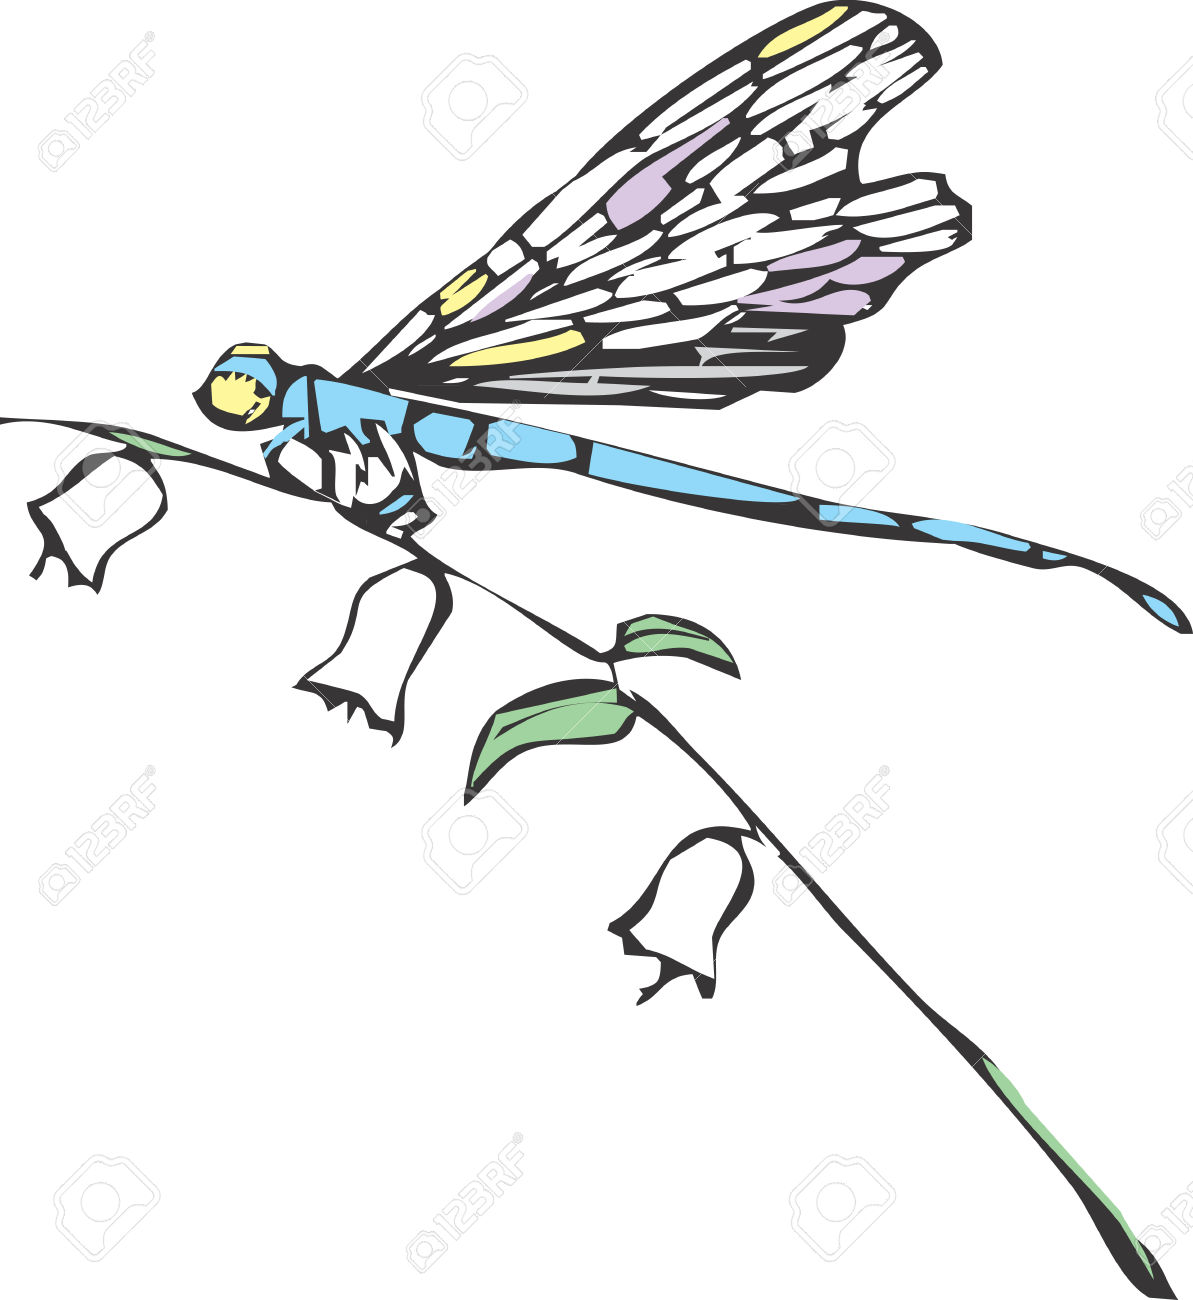 A Dragonfly Or Damselfly On A Flower Stem. Royalty Free Cliparts.